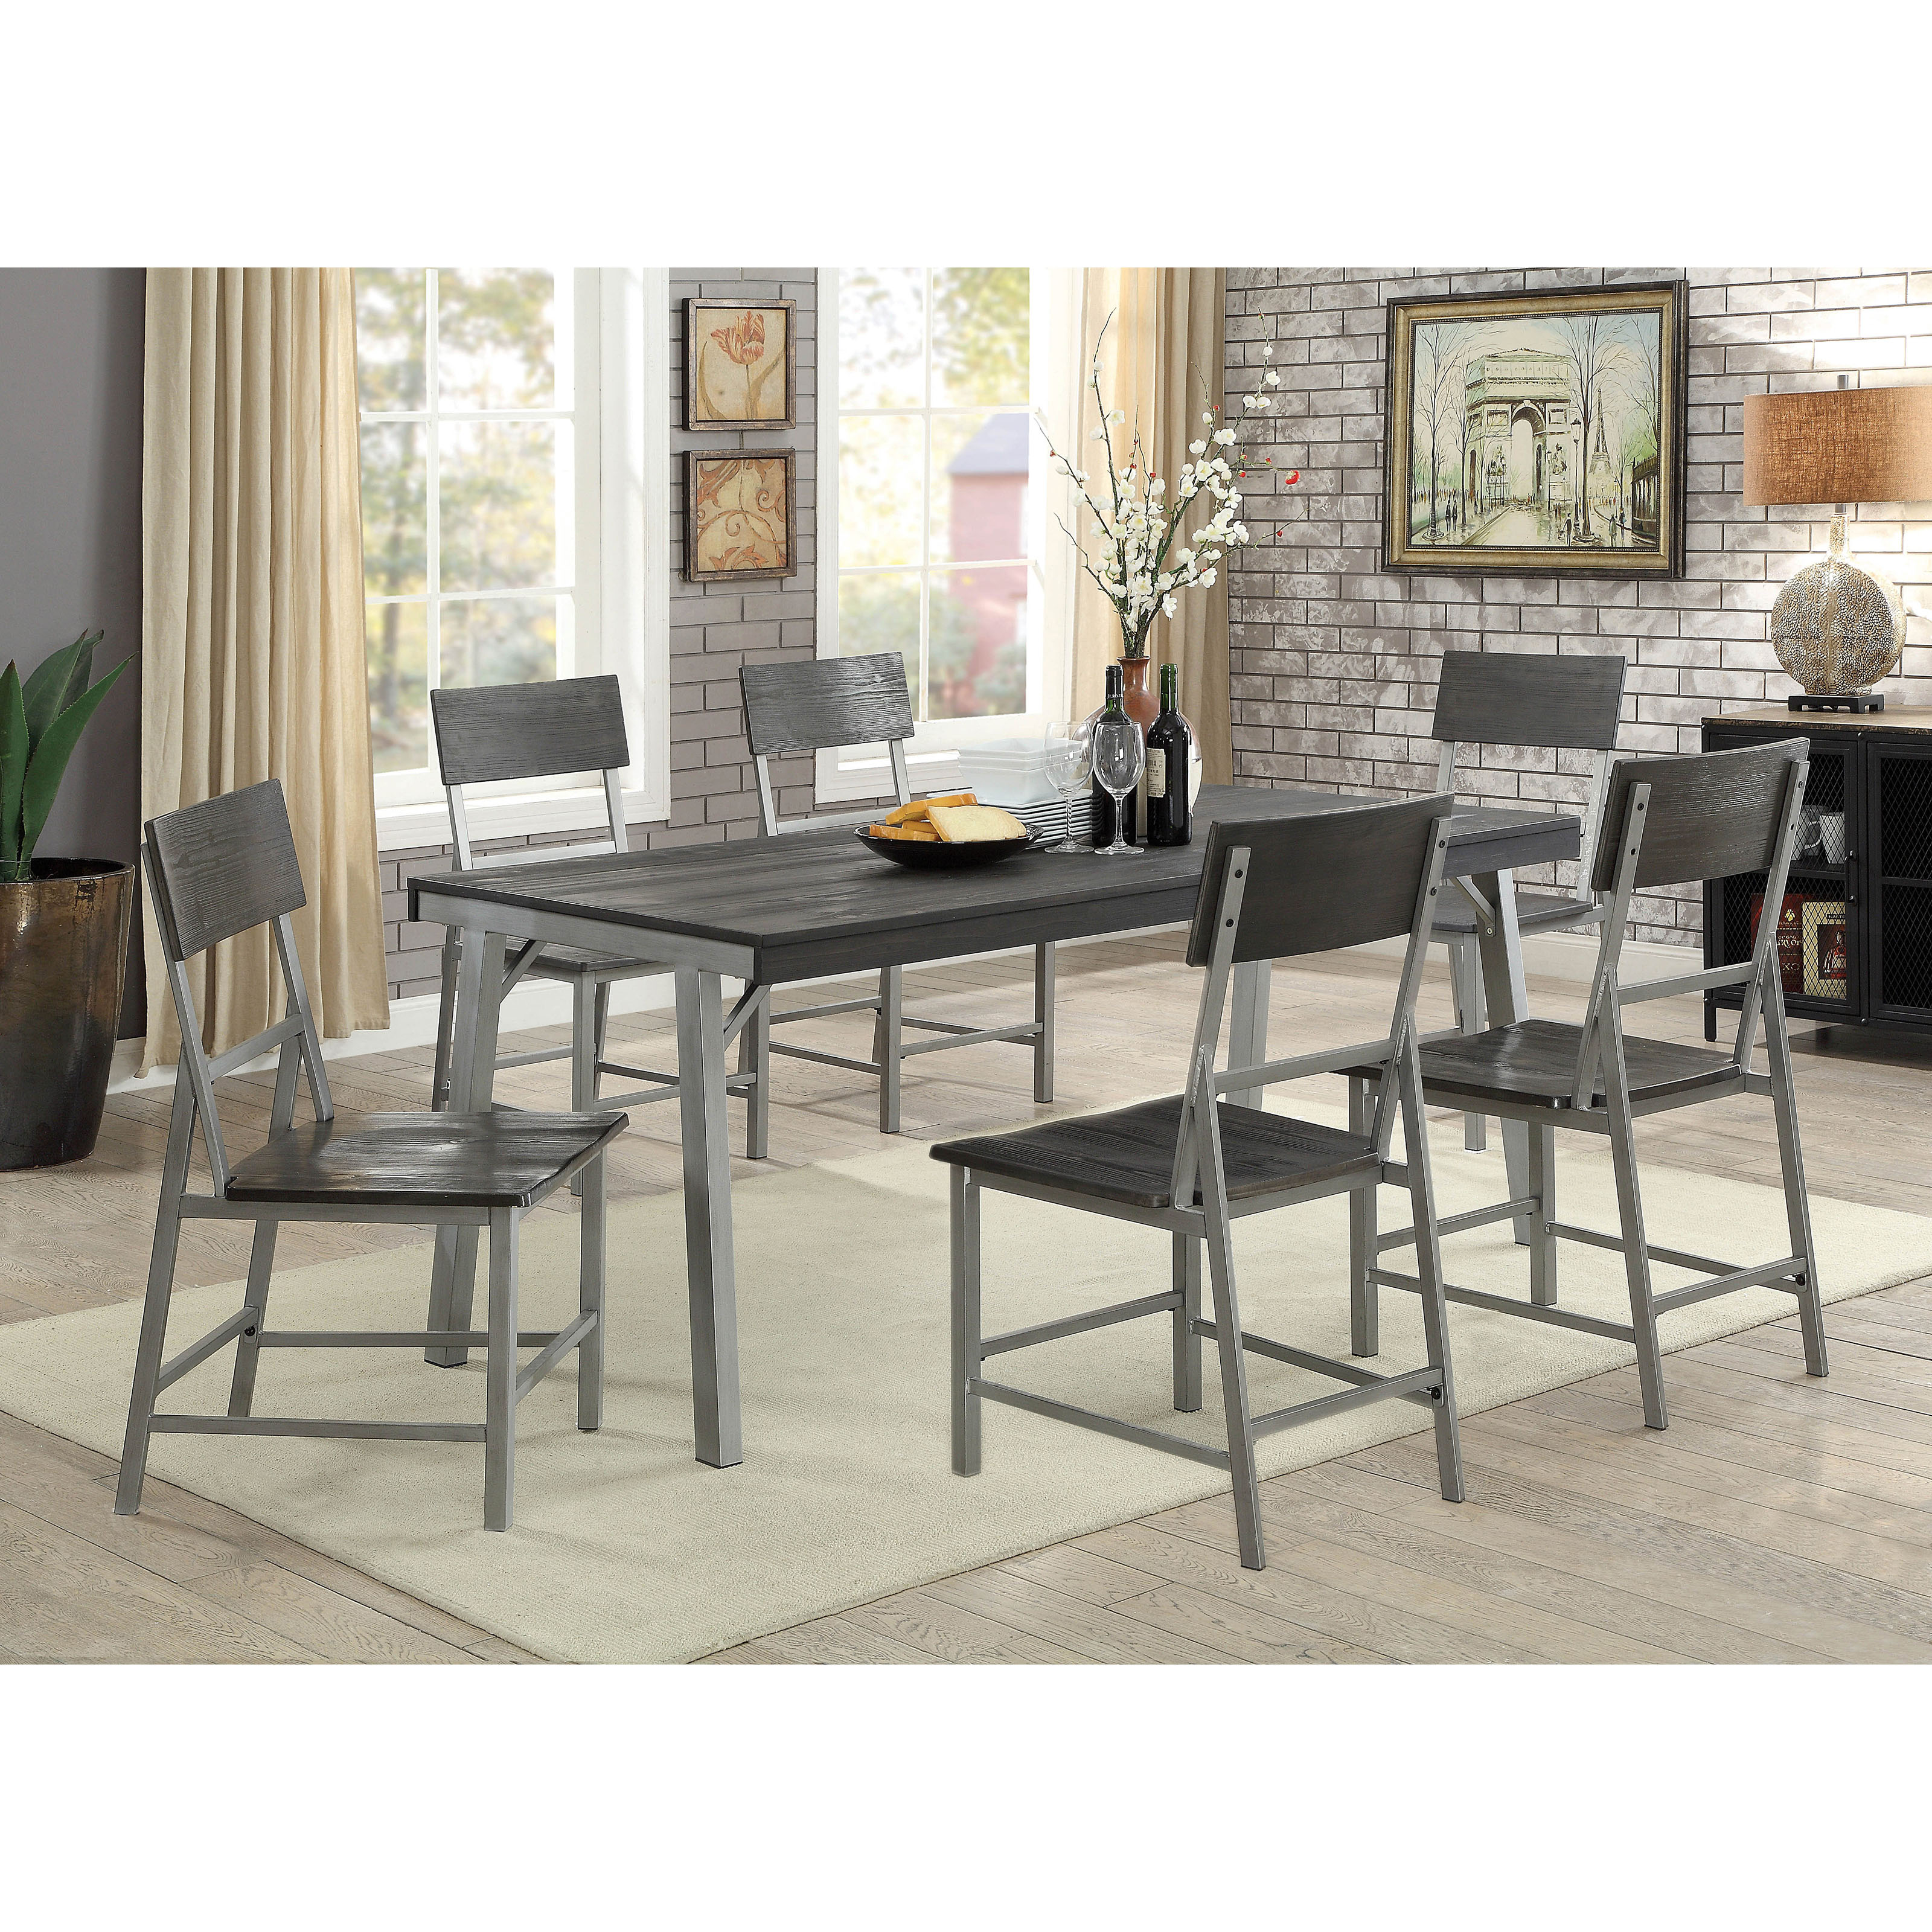 Furniture Of America Ballard 7 Piece Industrial Dining Table Set